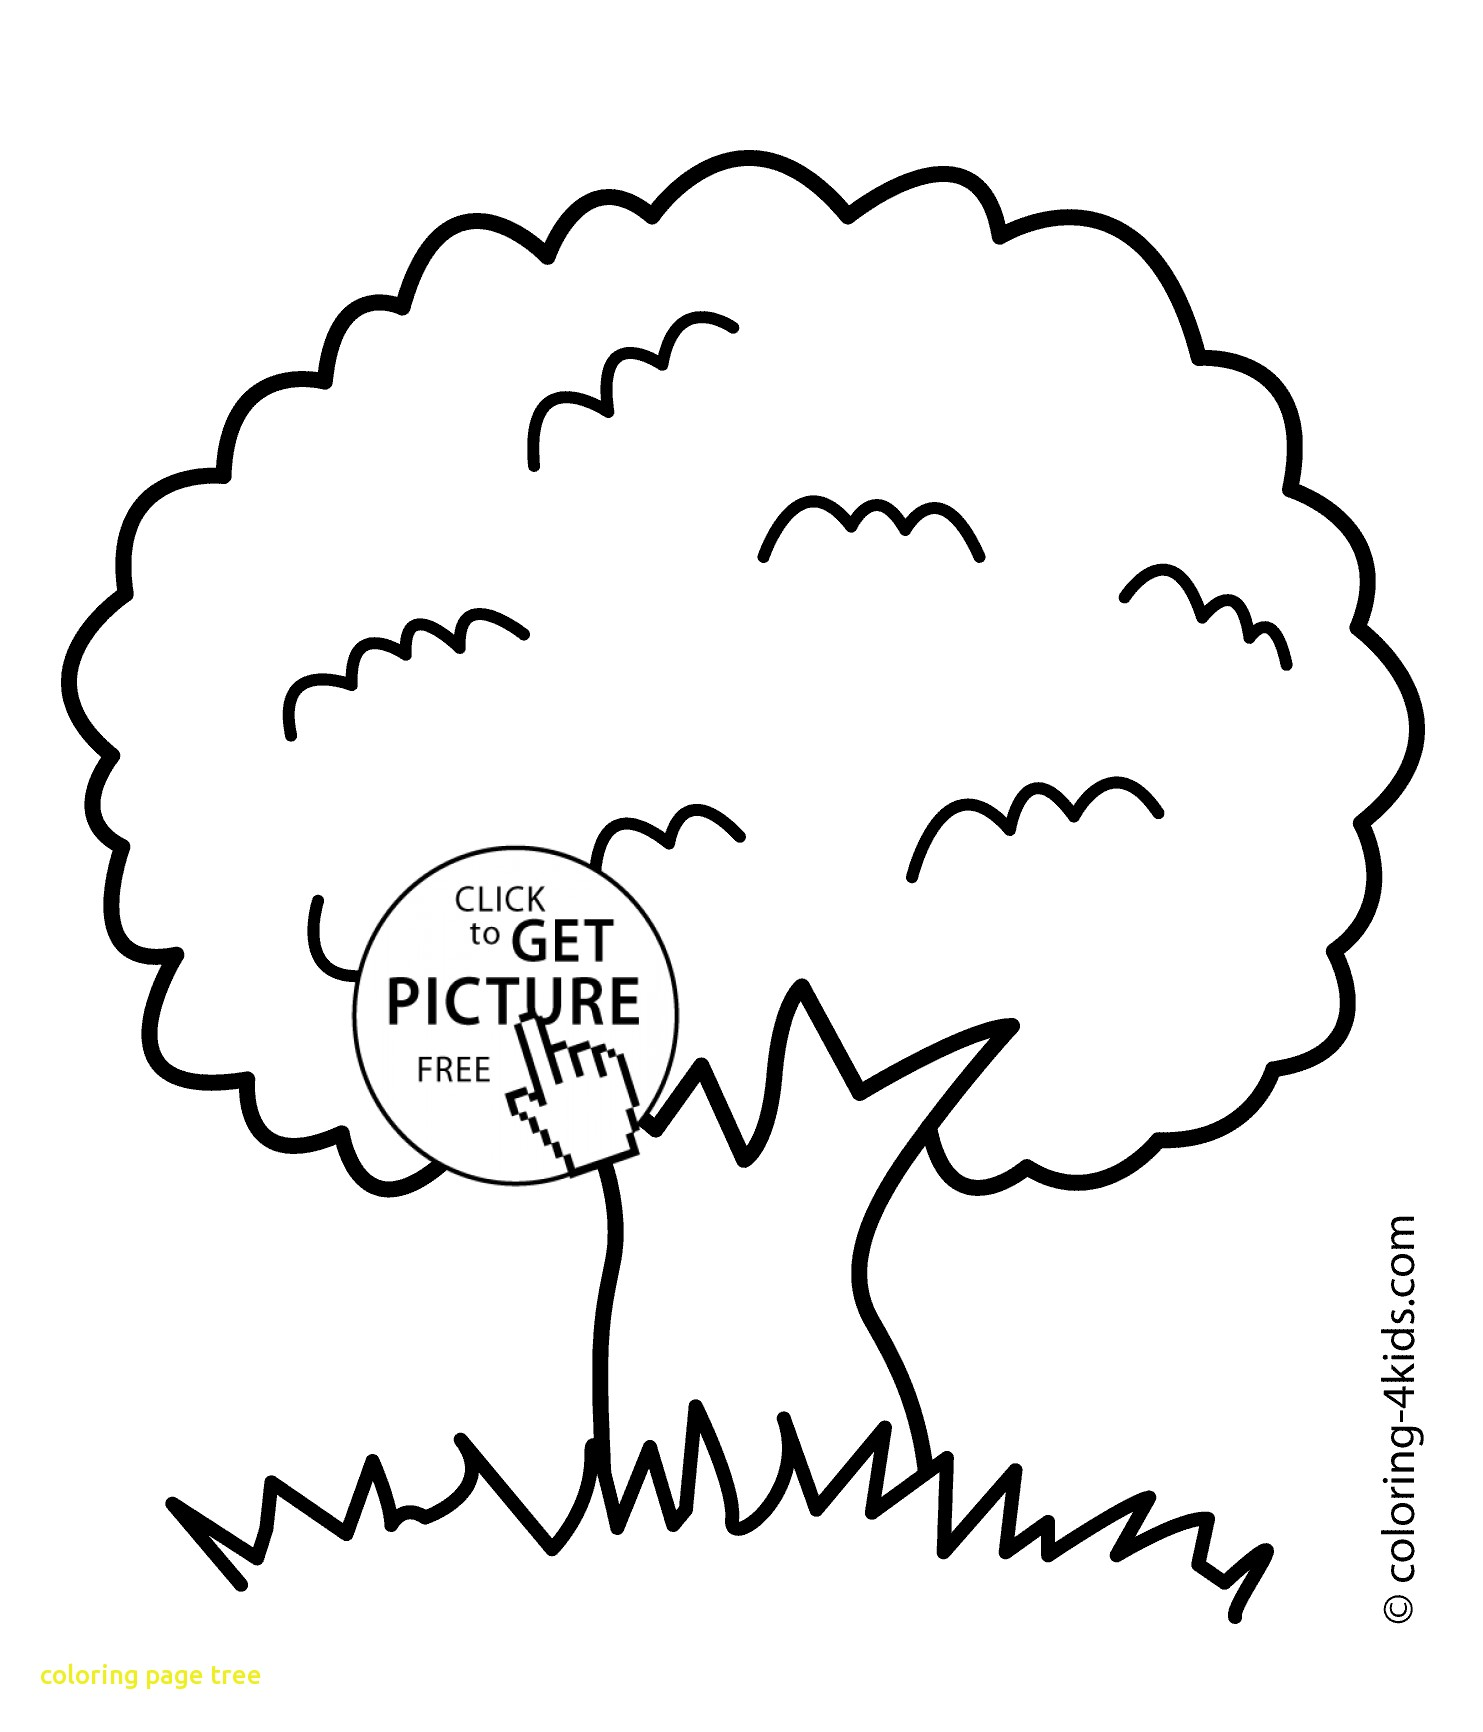 1483x1732 Inspiration Coloring Pages Olive Tree Copy Walnut Tree Branch